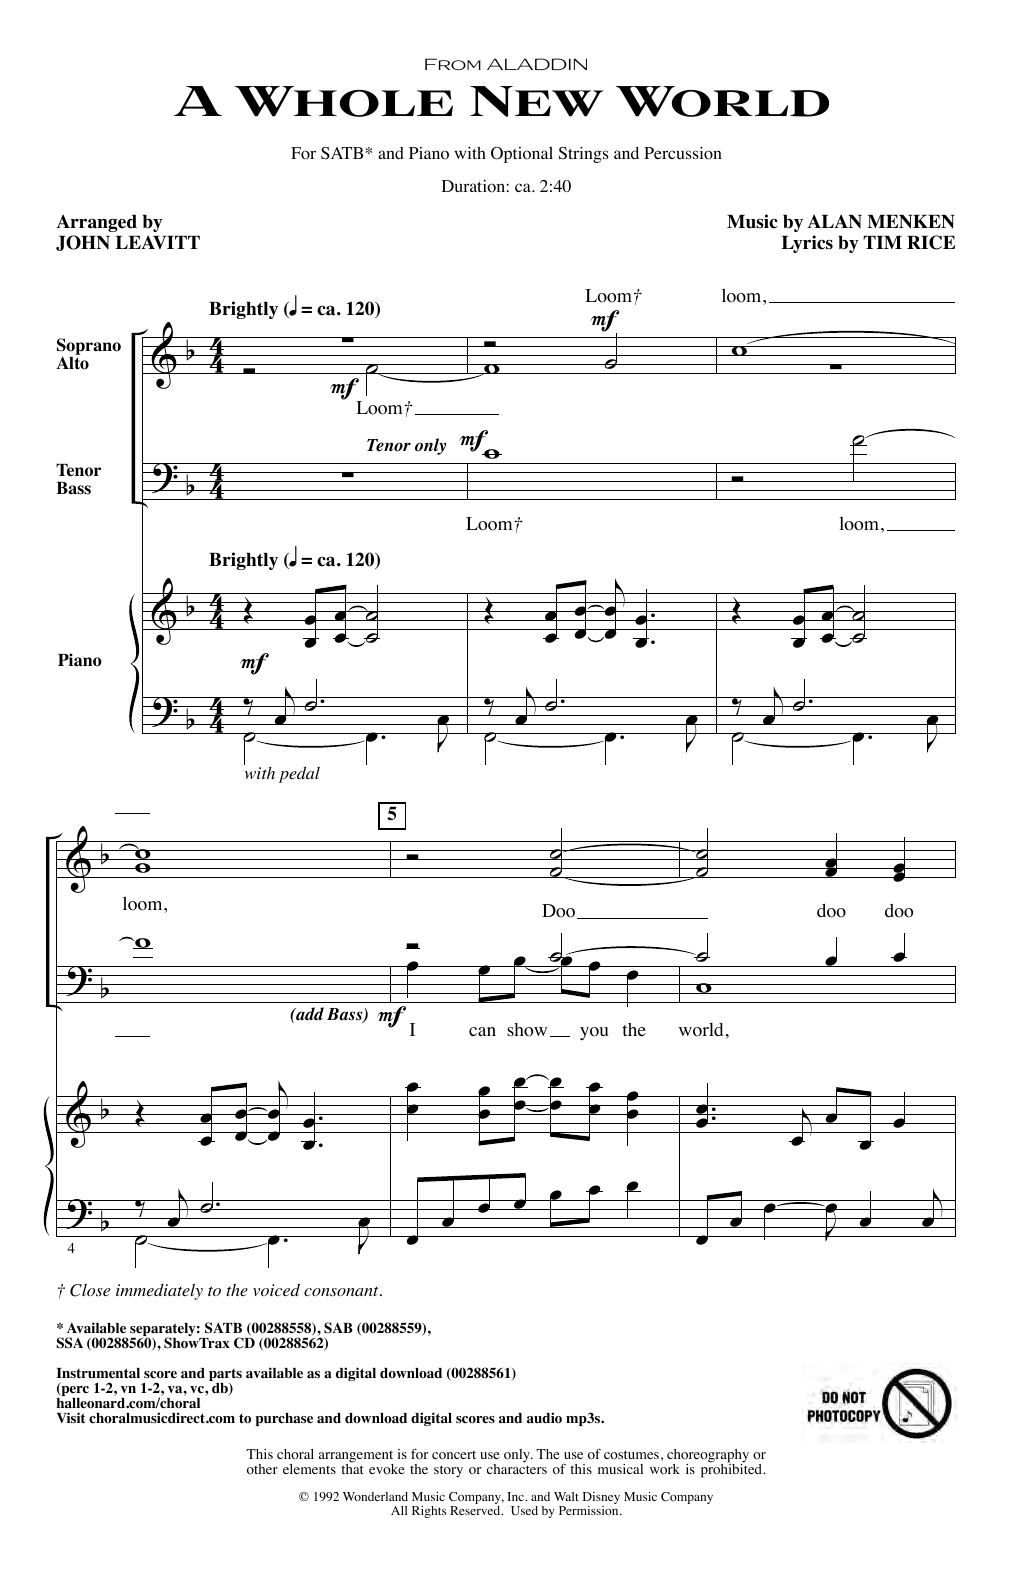 photograph about Disney Piano Sheet Music Free Printable identify Alan Menken A Full Fresh new World-wide (in opposition to Aladdin) (arr. John Leavitt) Sheet New music Notes, Chords Obtain Printable SATB Choir - SKU: 409866